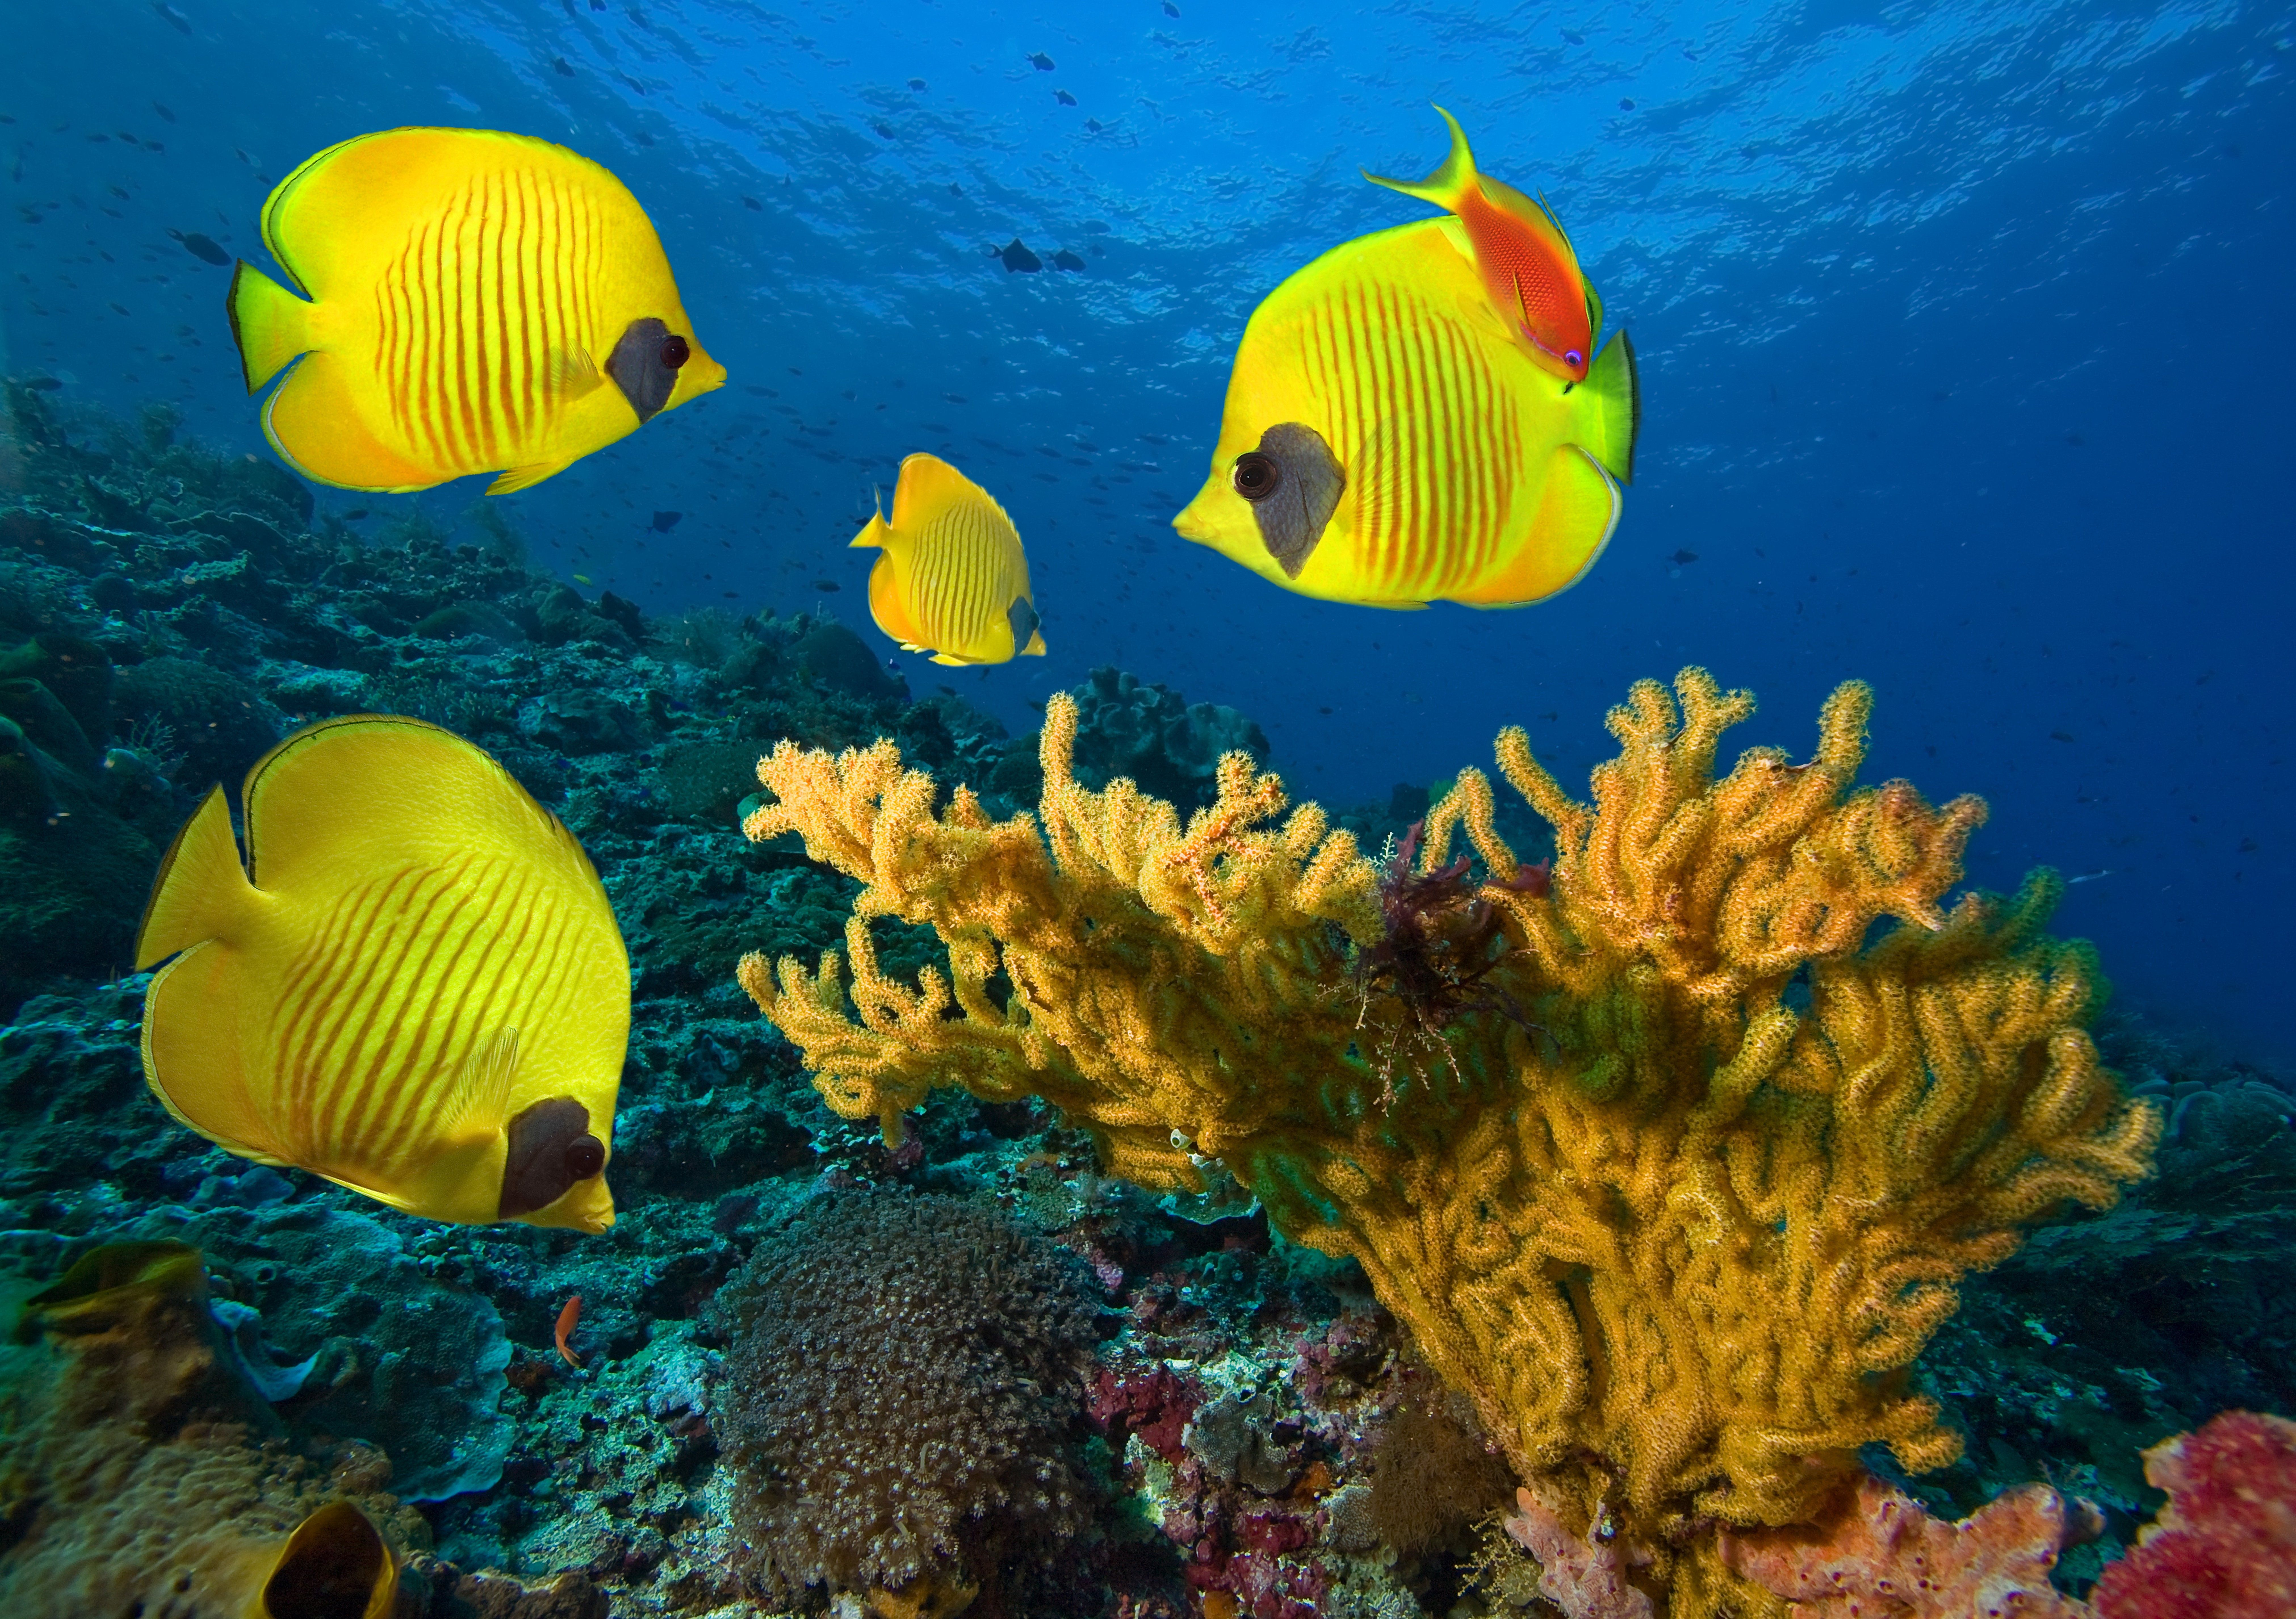 Underwater Fish Fishes Tropical Ocean Sea Reef Wallpaper 8088x5702 661461 Wallpaperup Underwater Fish Tropical Fish Pictures Yellow Fish